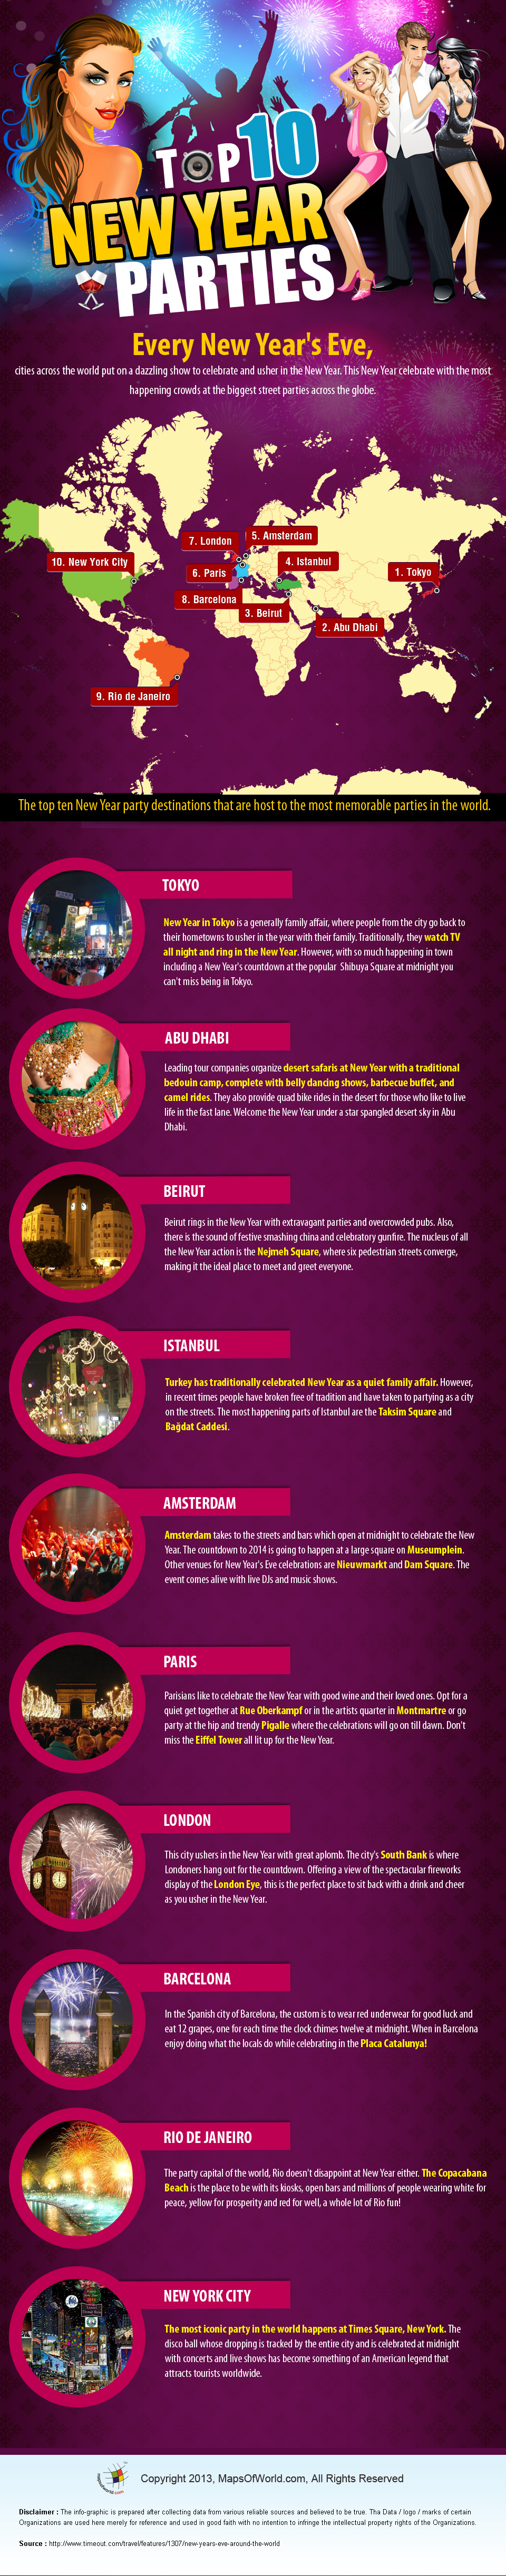 Infographic on New Year's Eve Parties